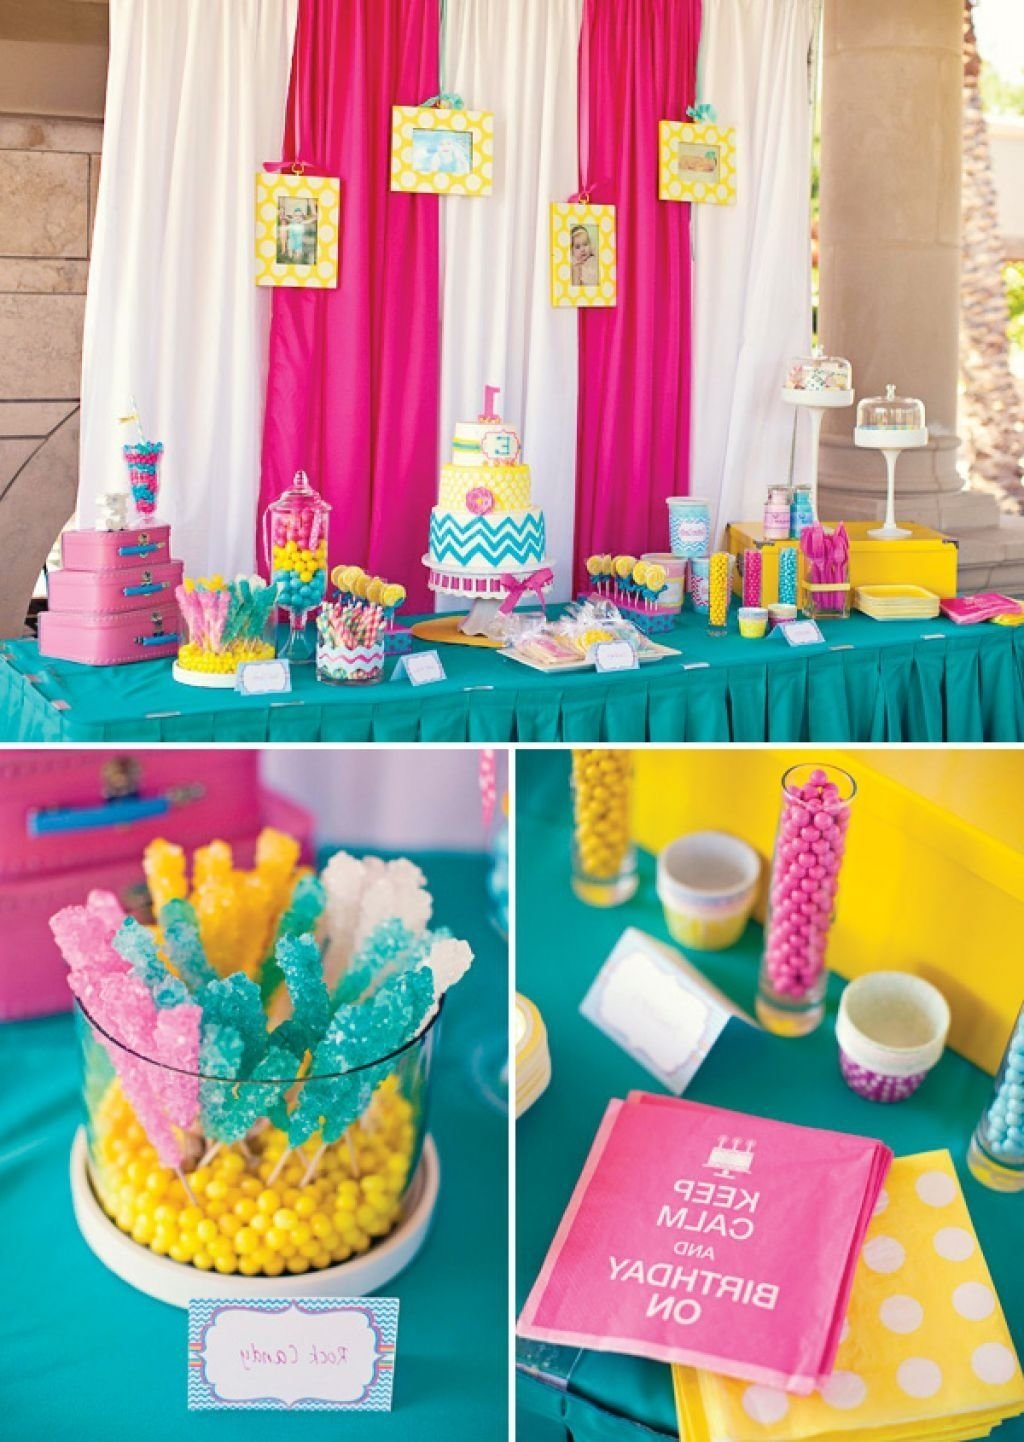 10 Wonderful 2 Year Old Girl Birthday Ideas Outdoor Party Decorations Google Search Madeline 28